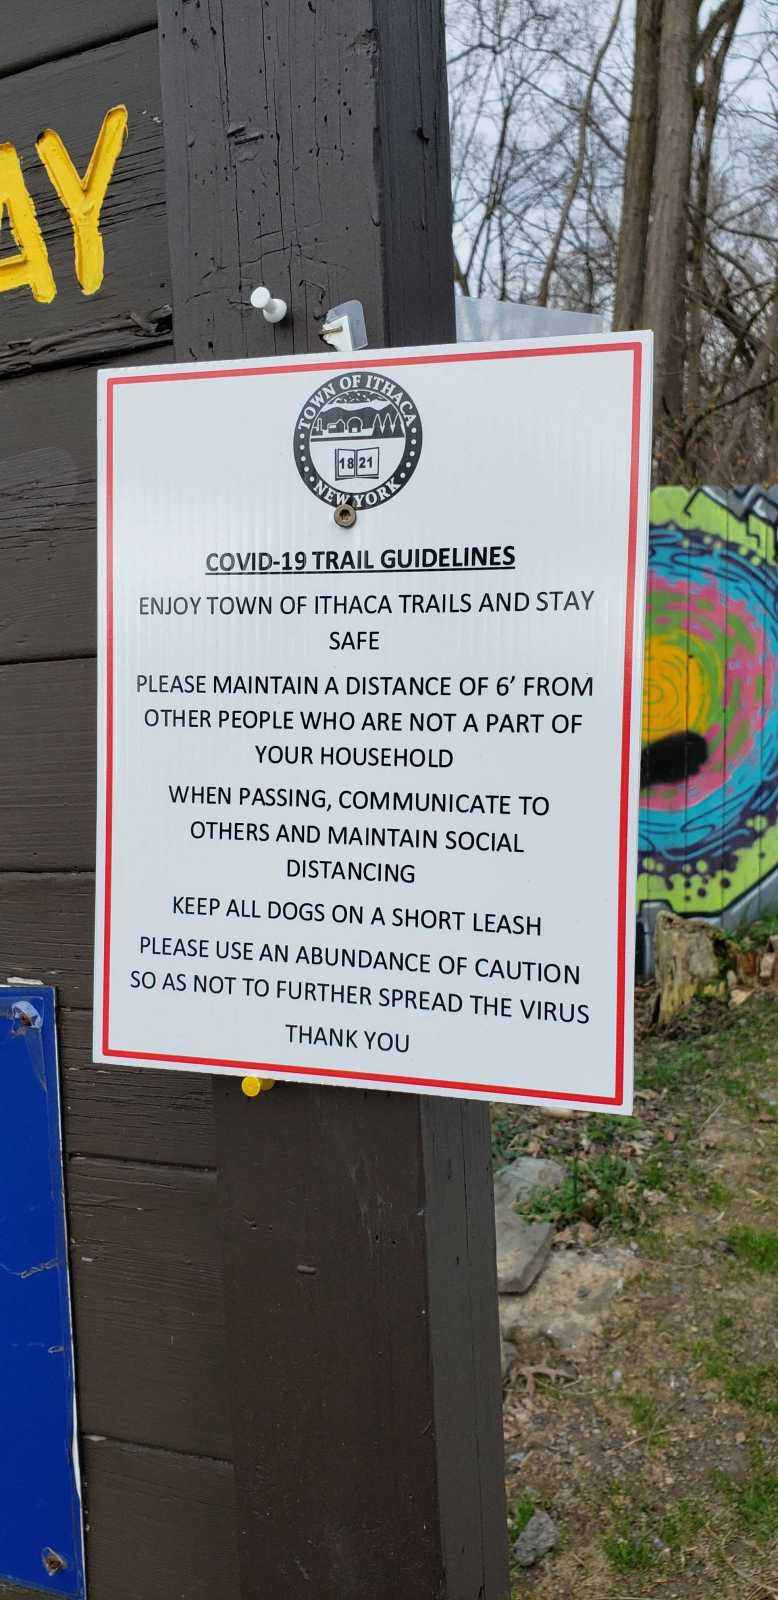 Covid-19 Trail Guidelines